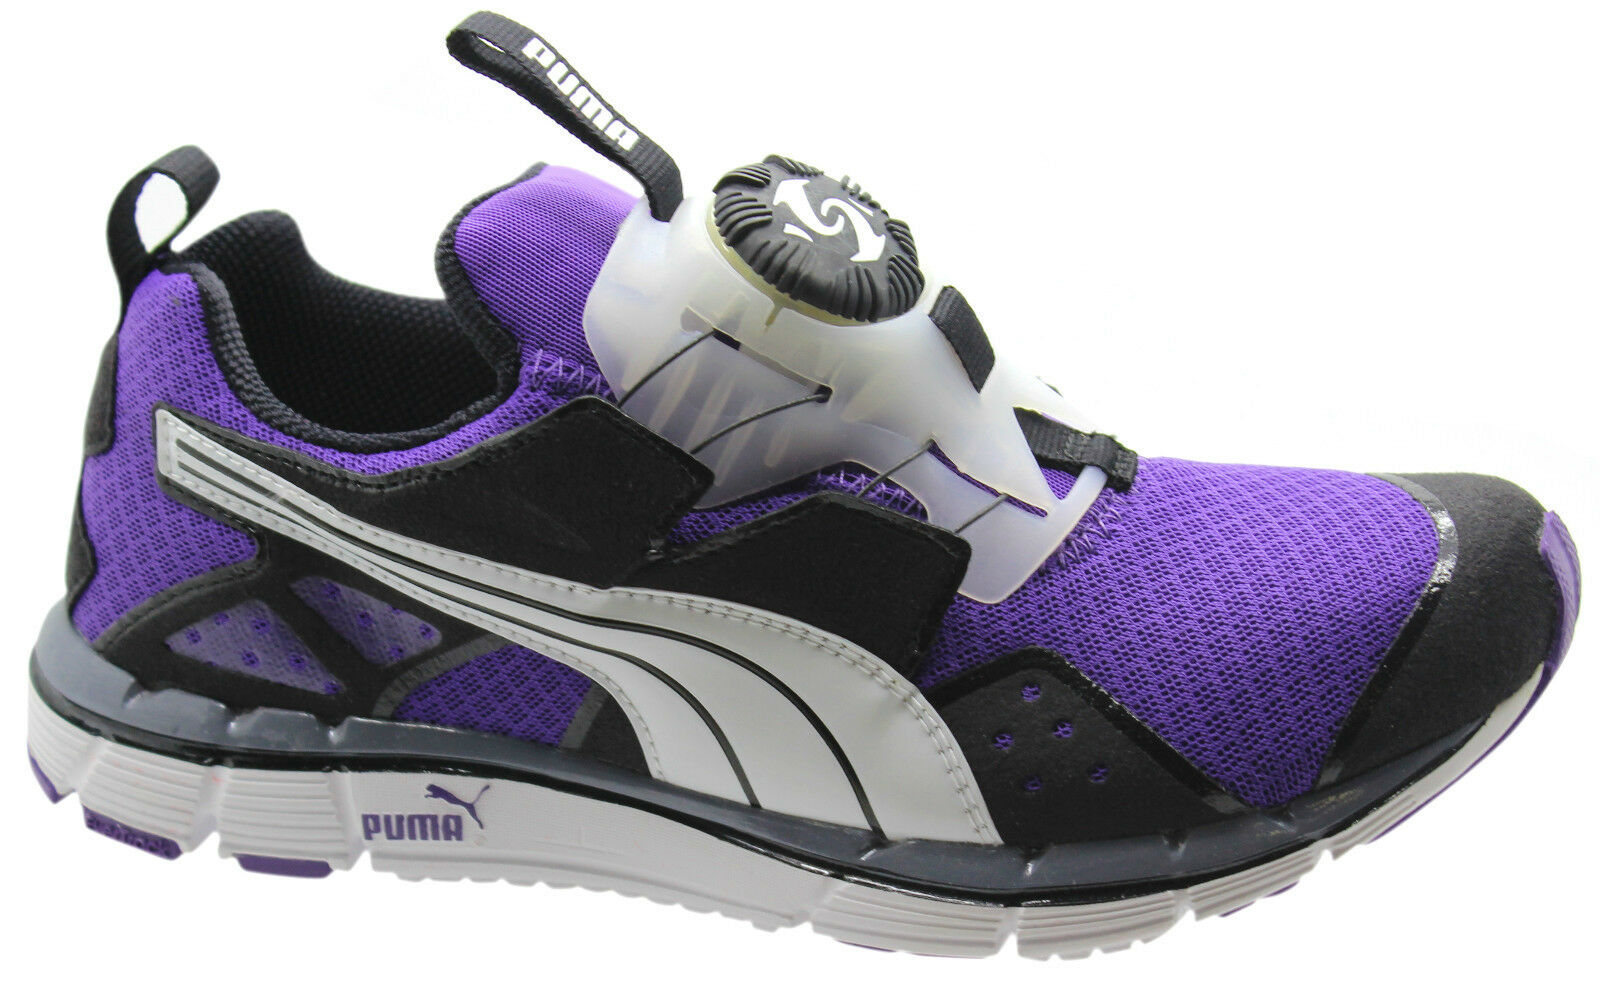 Puma Disc Ltwt 2.0 Lightweight Mens Trainers Purple Slip On 186701 05 P2 Great discount